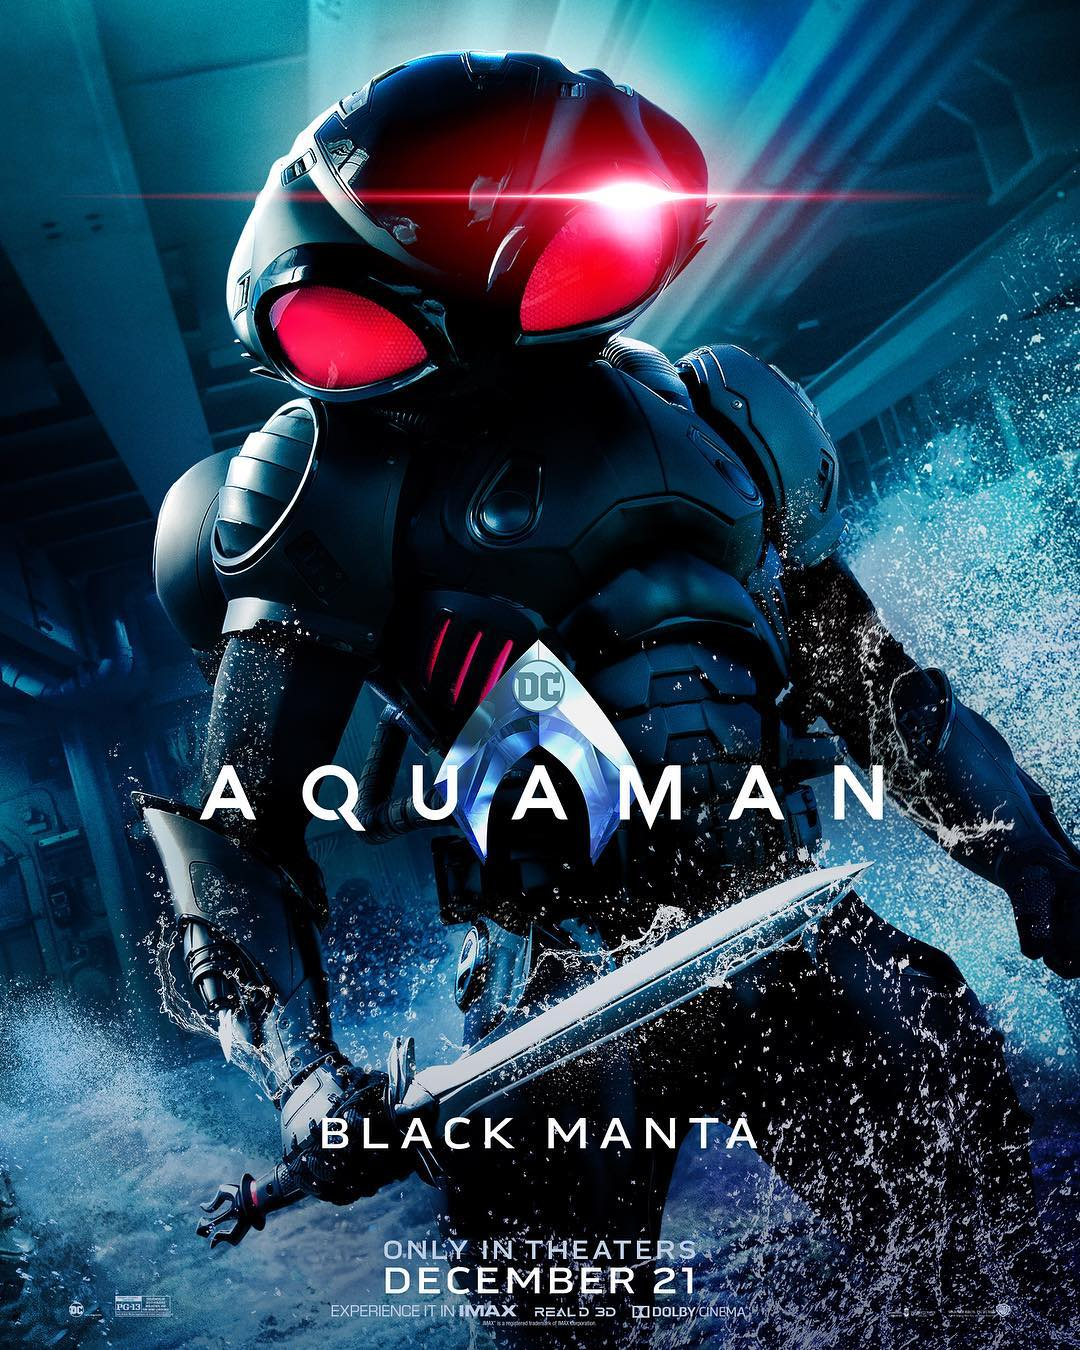 Check out the Black Manta movie poster for Aquaman!